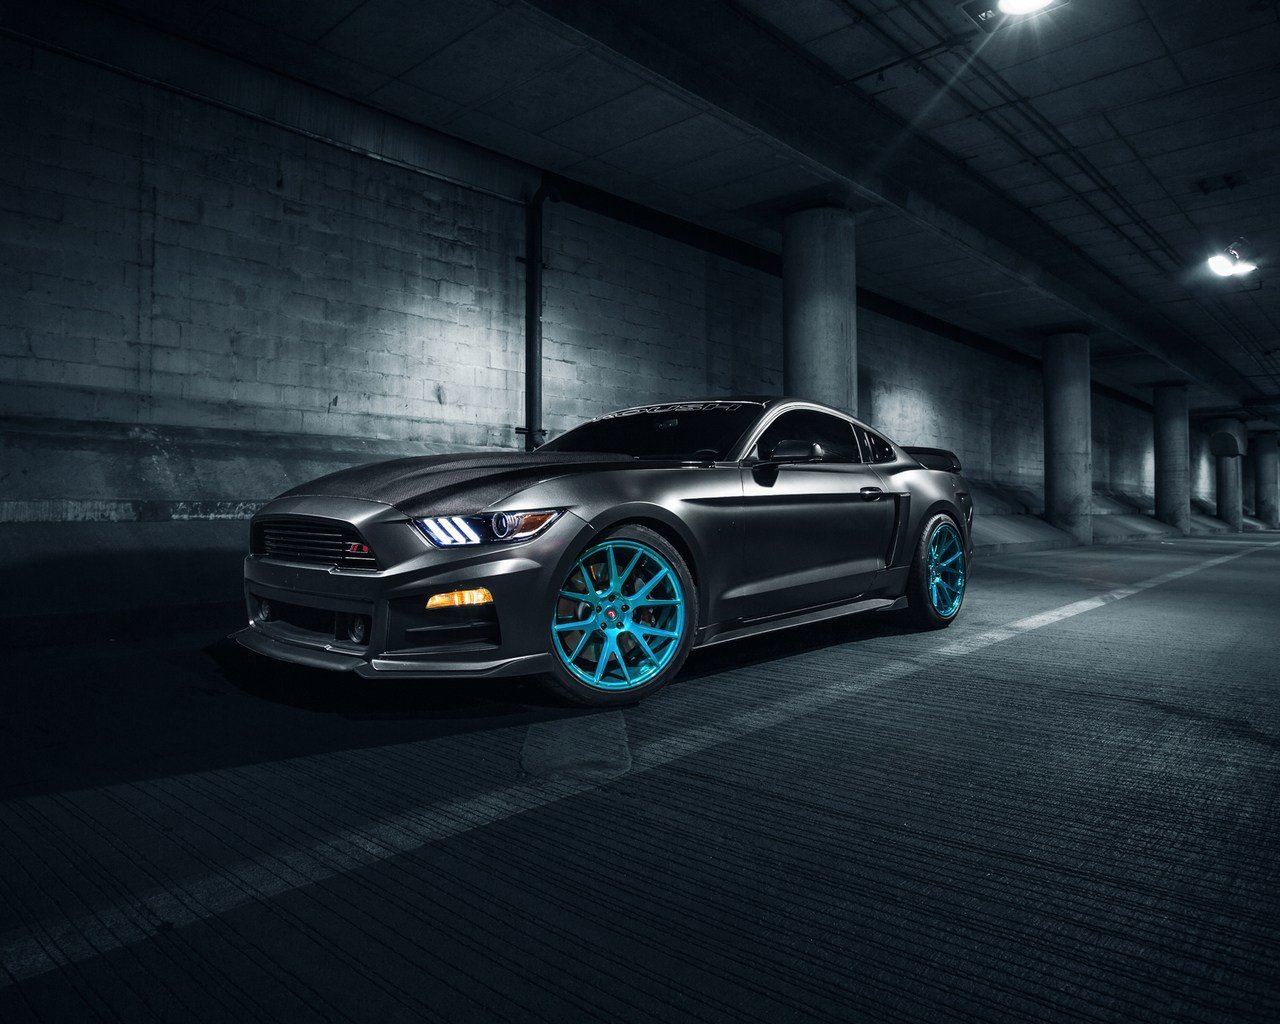 Latest 1280X1024 Ford Mustang Muscle Car Hd 1280X1024 Resolution Free Download